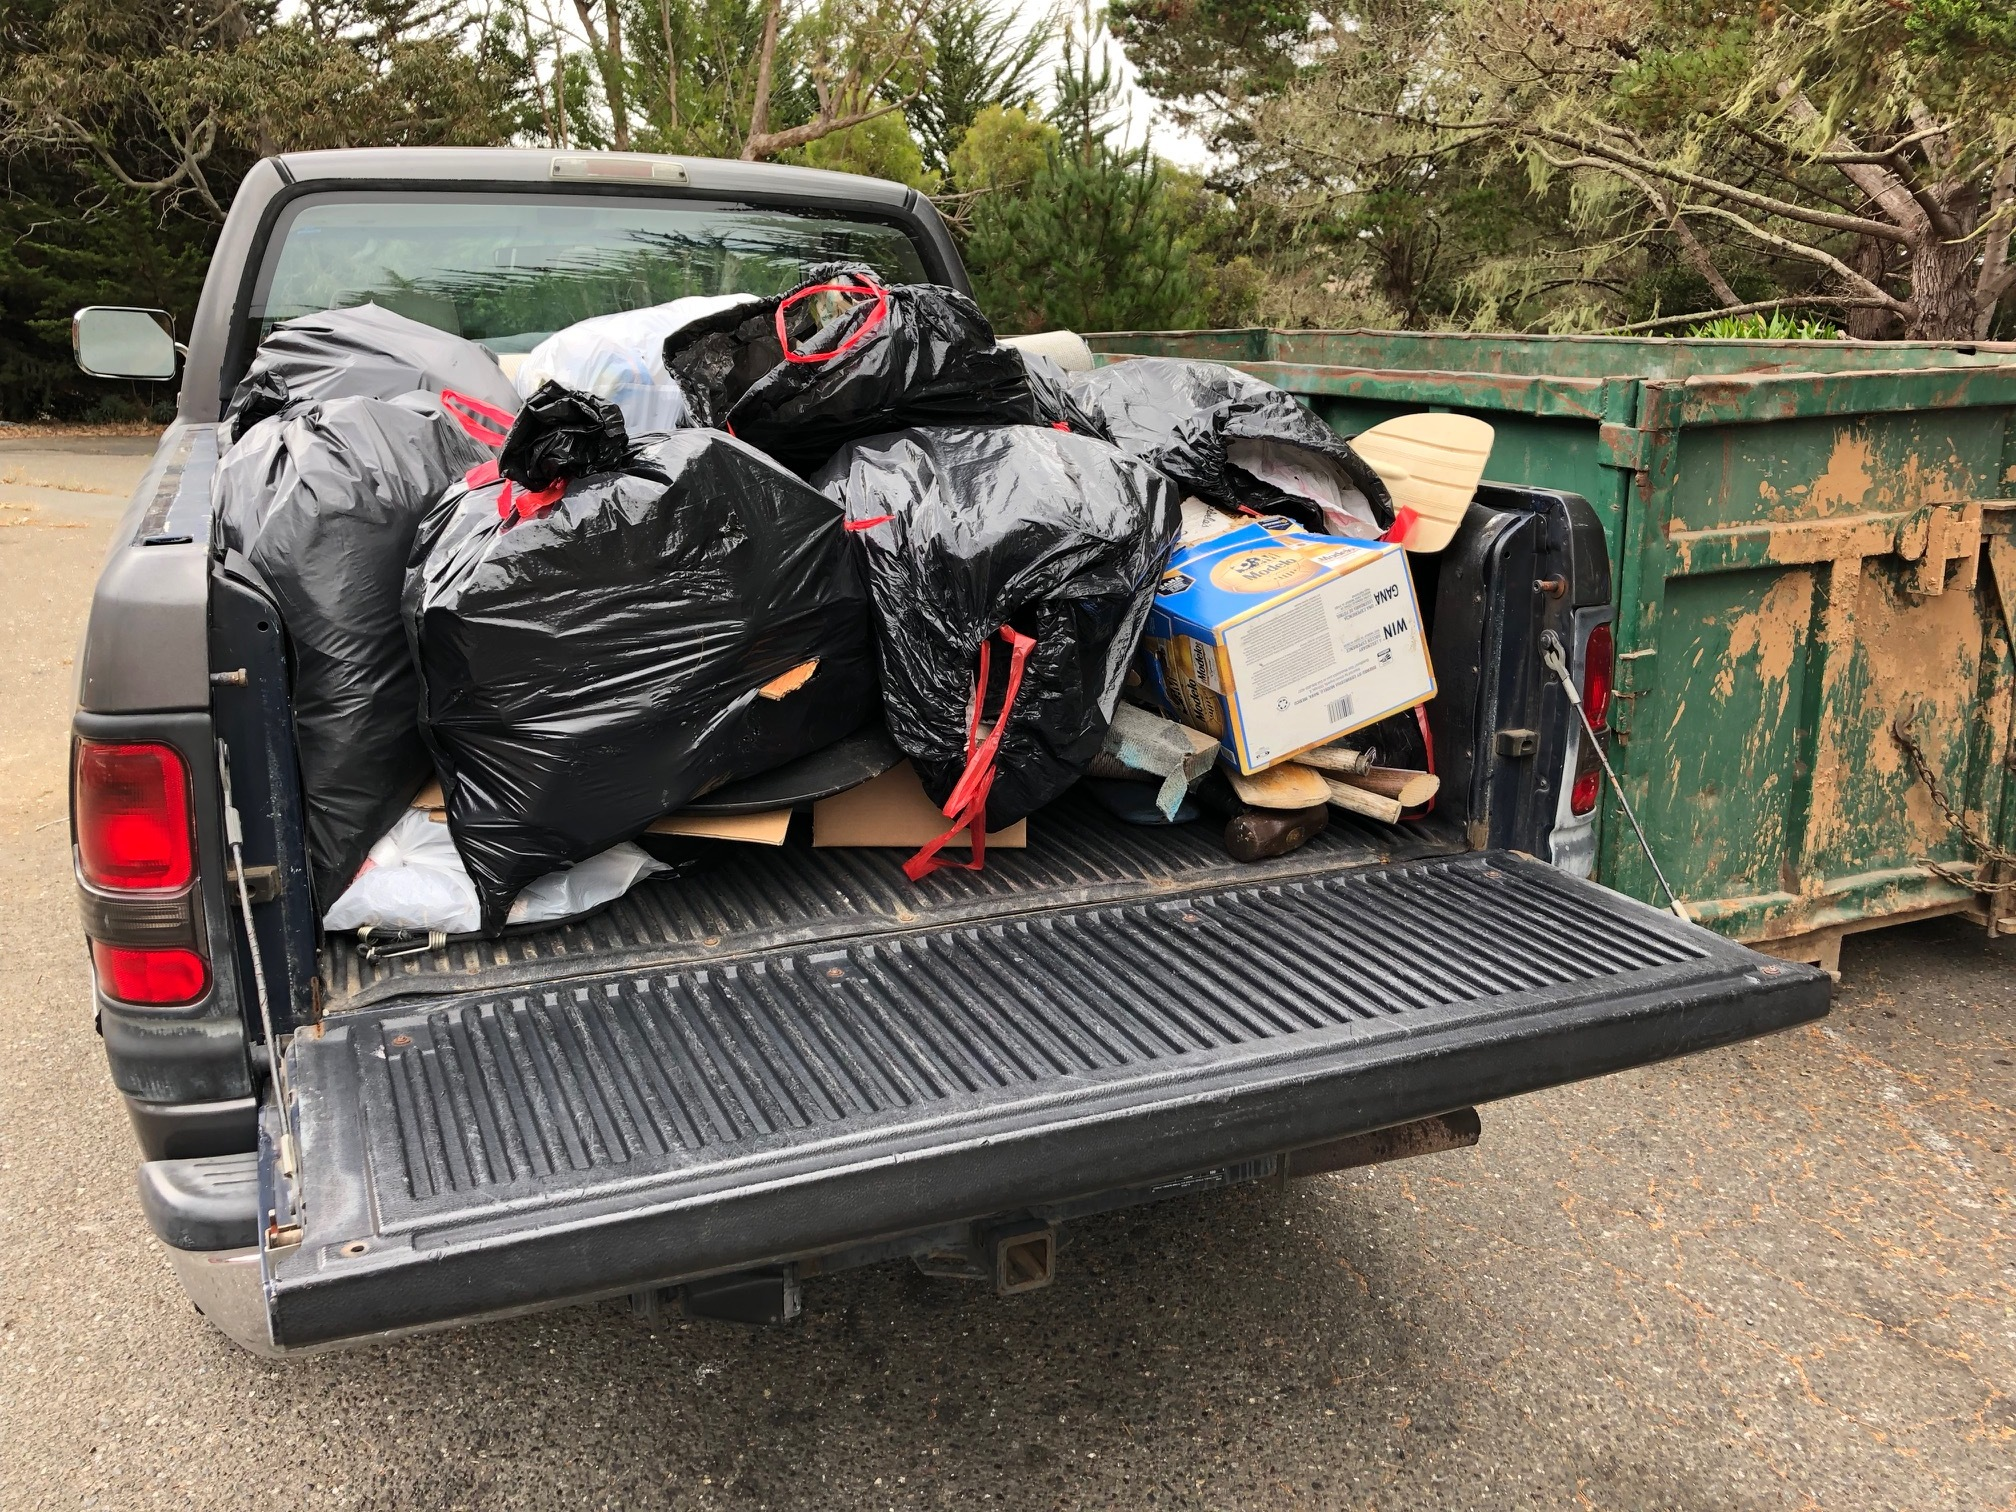 East Shore Planning Group's Haul from Along Hwy 1